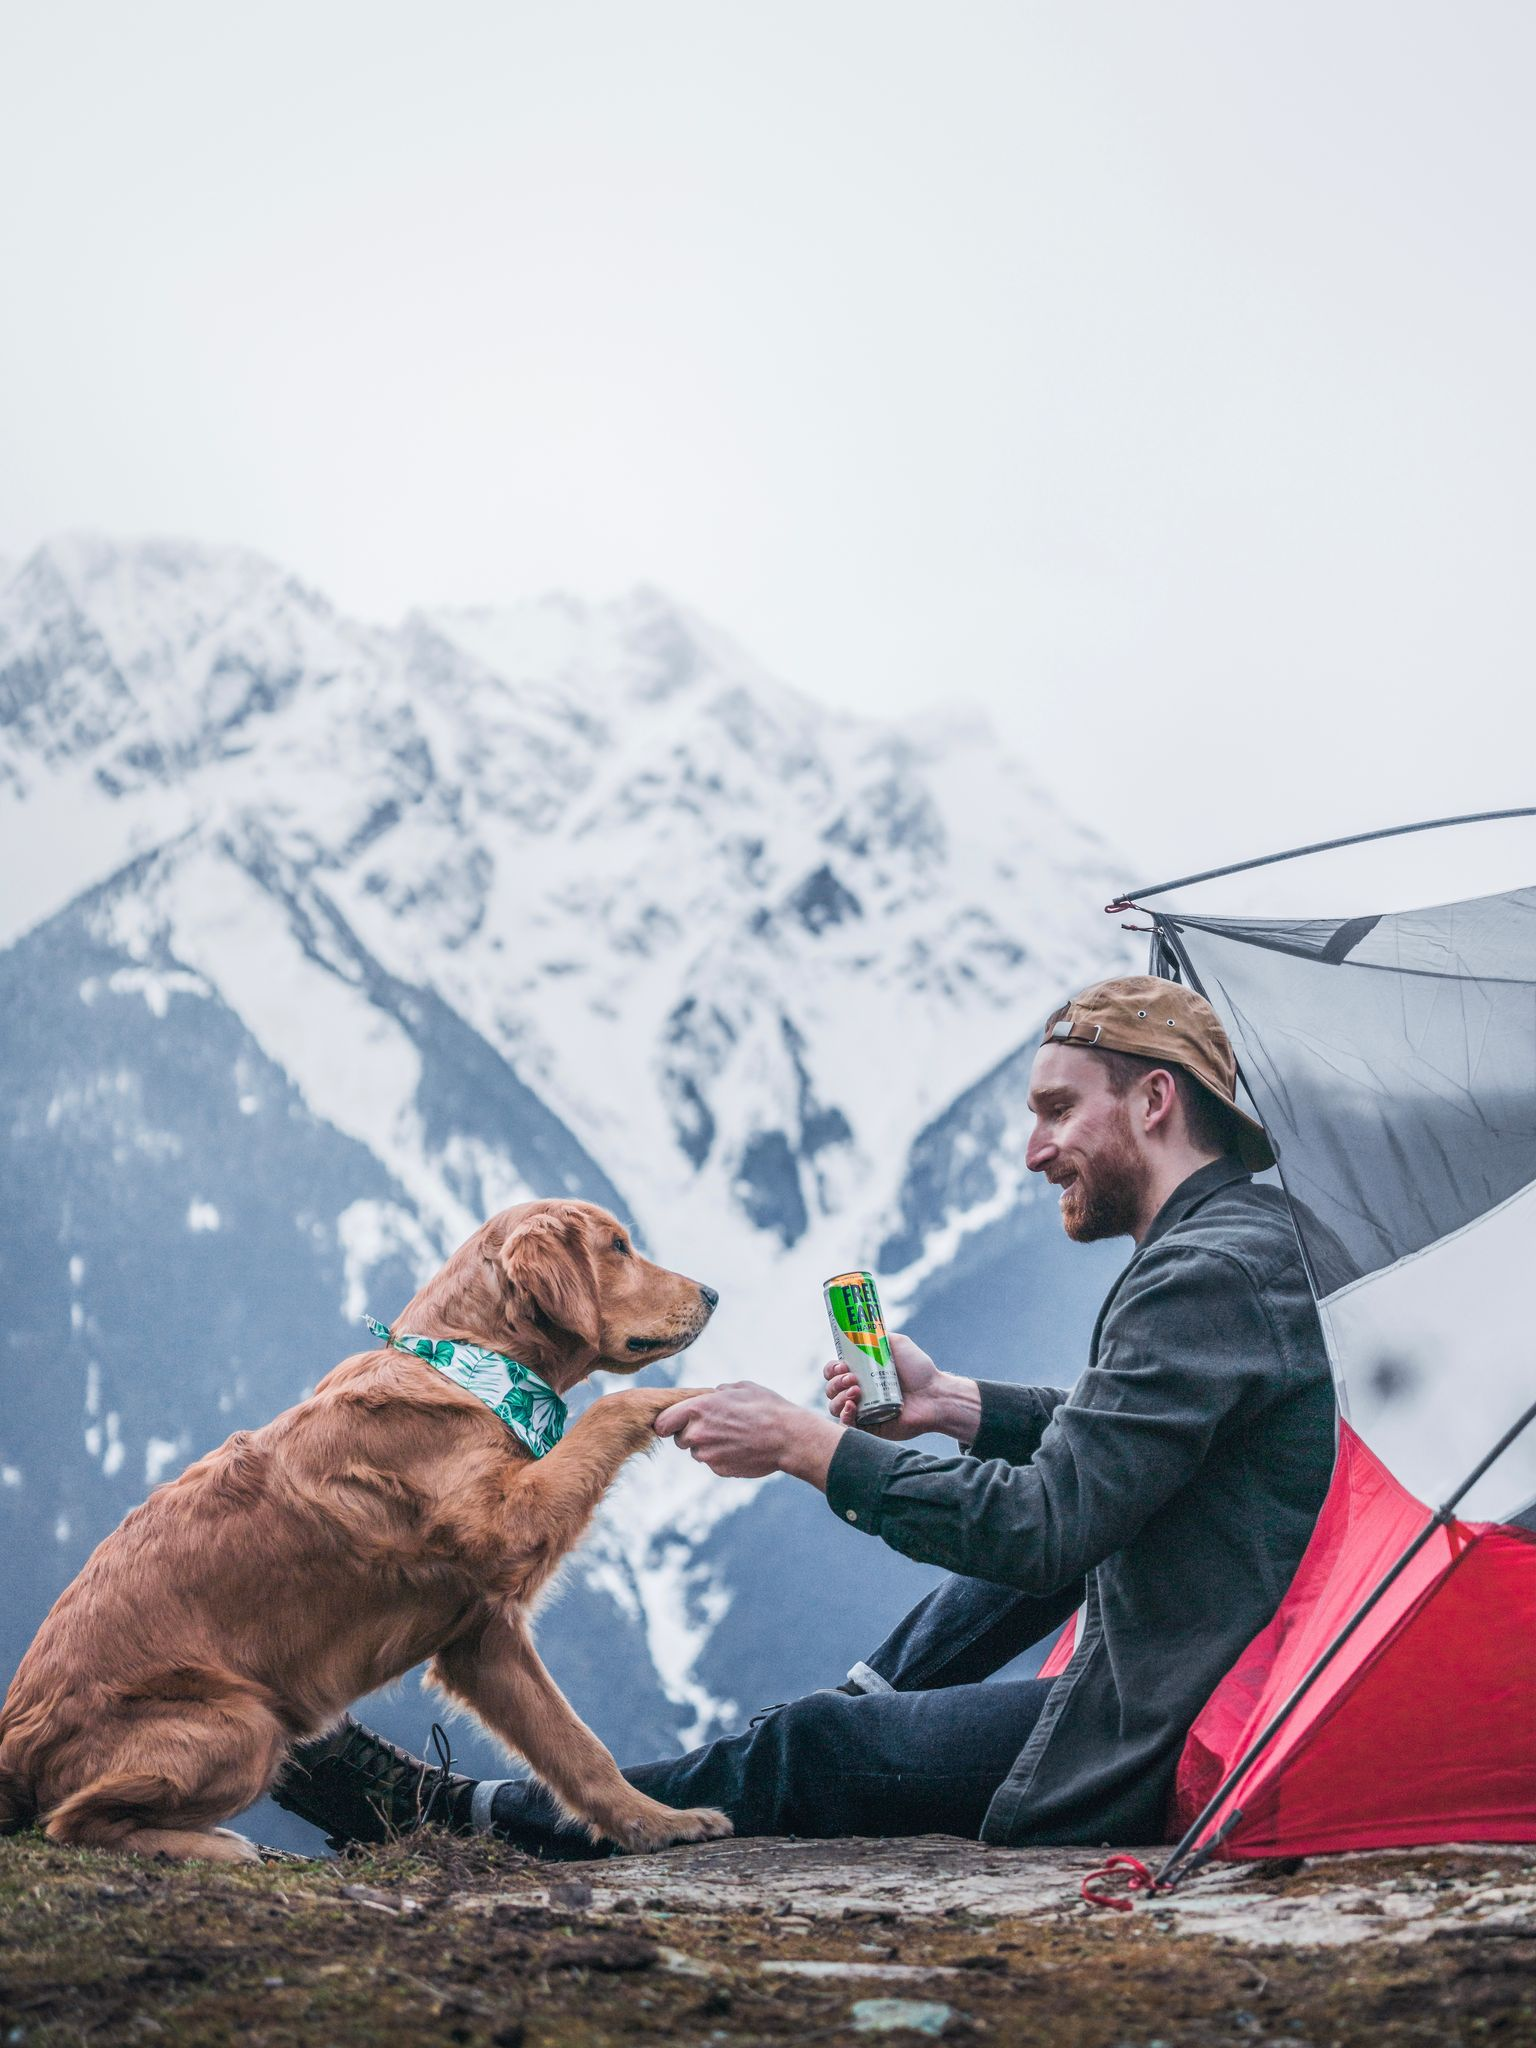 man camping on mountain with dog